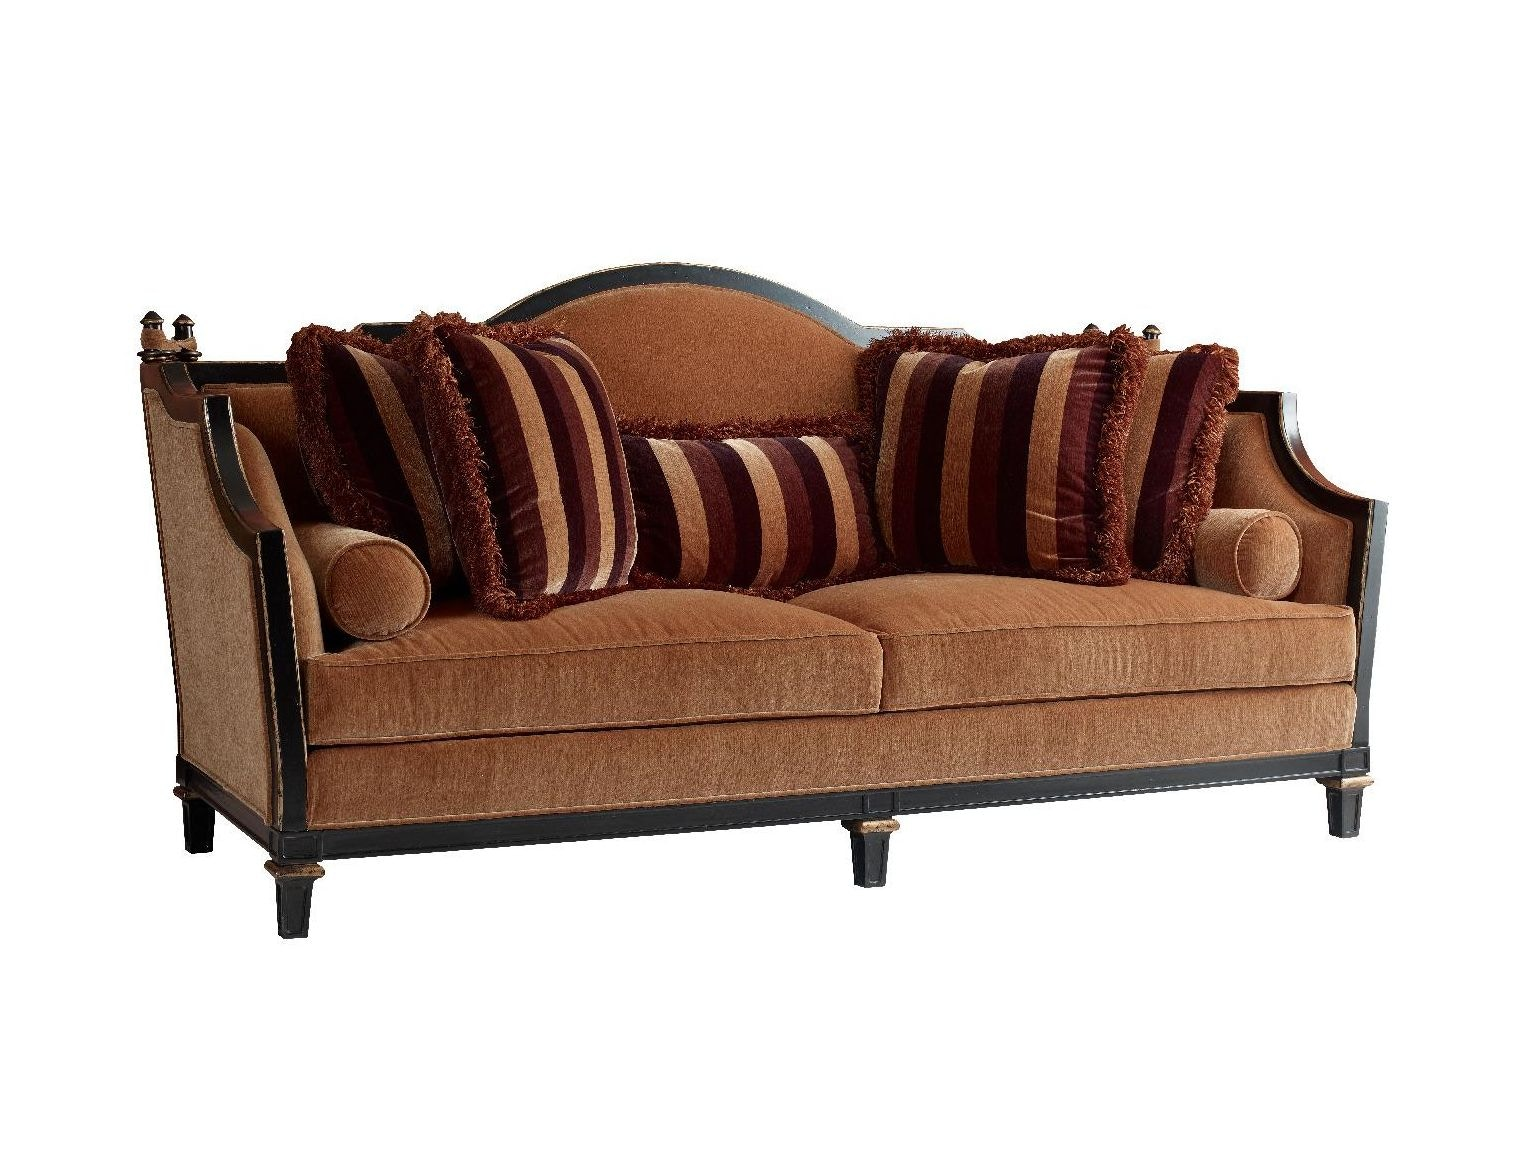 faux leather sofa india step by pallet bed fine furniture design living room ratchet 6004